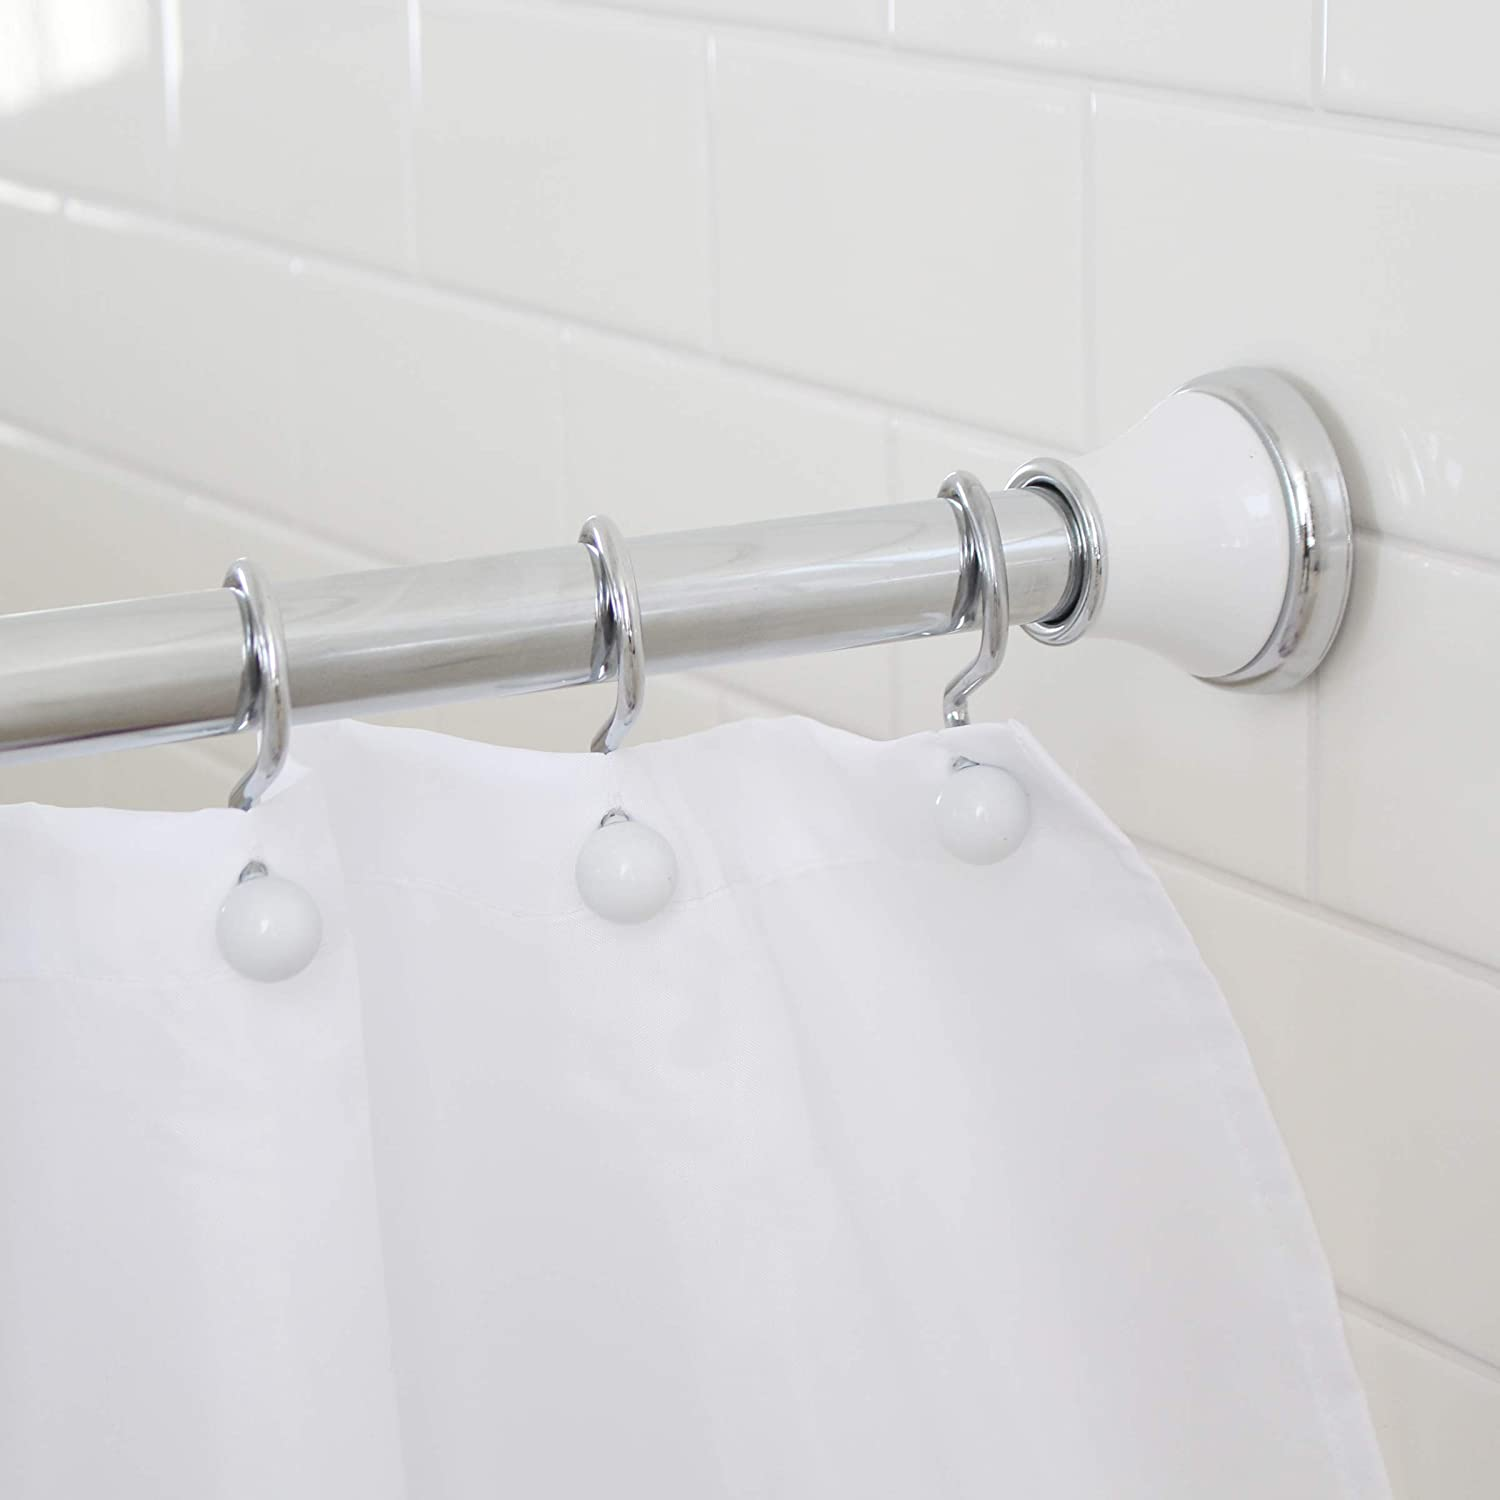 splash home regal rust resistant strong hold constant tension bathroom decorative shower curtain rod extendable 42 72 inches chrome